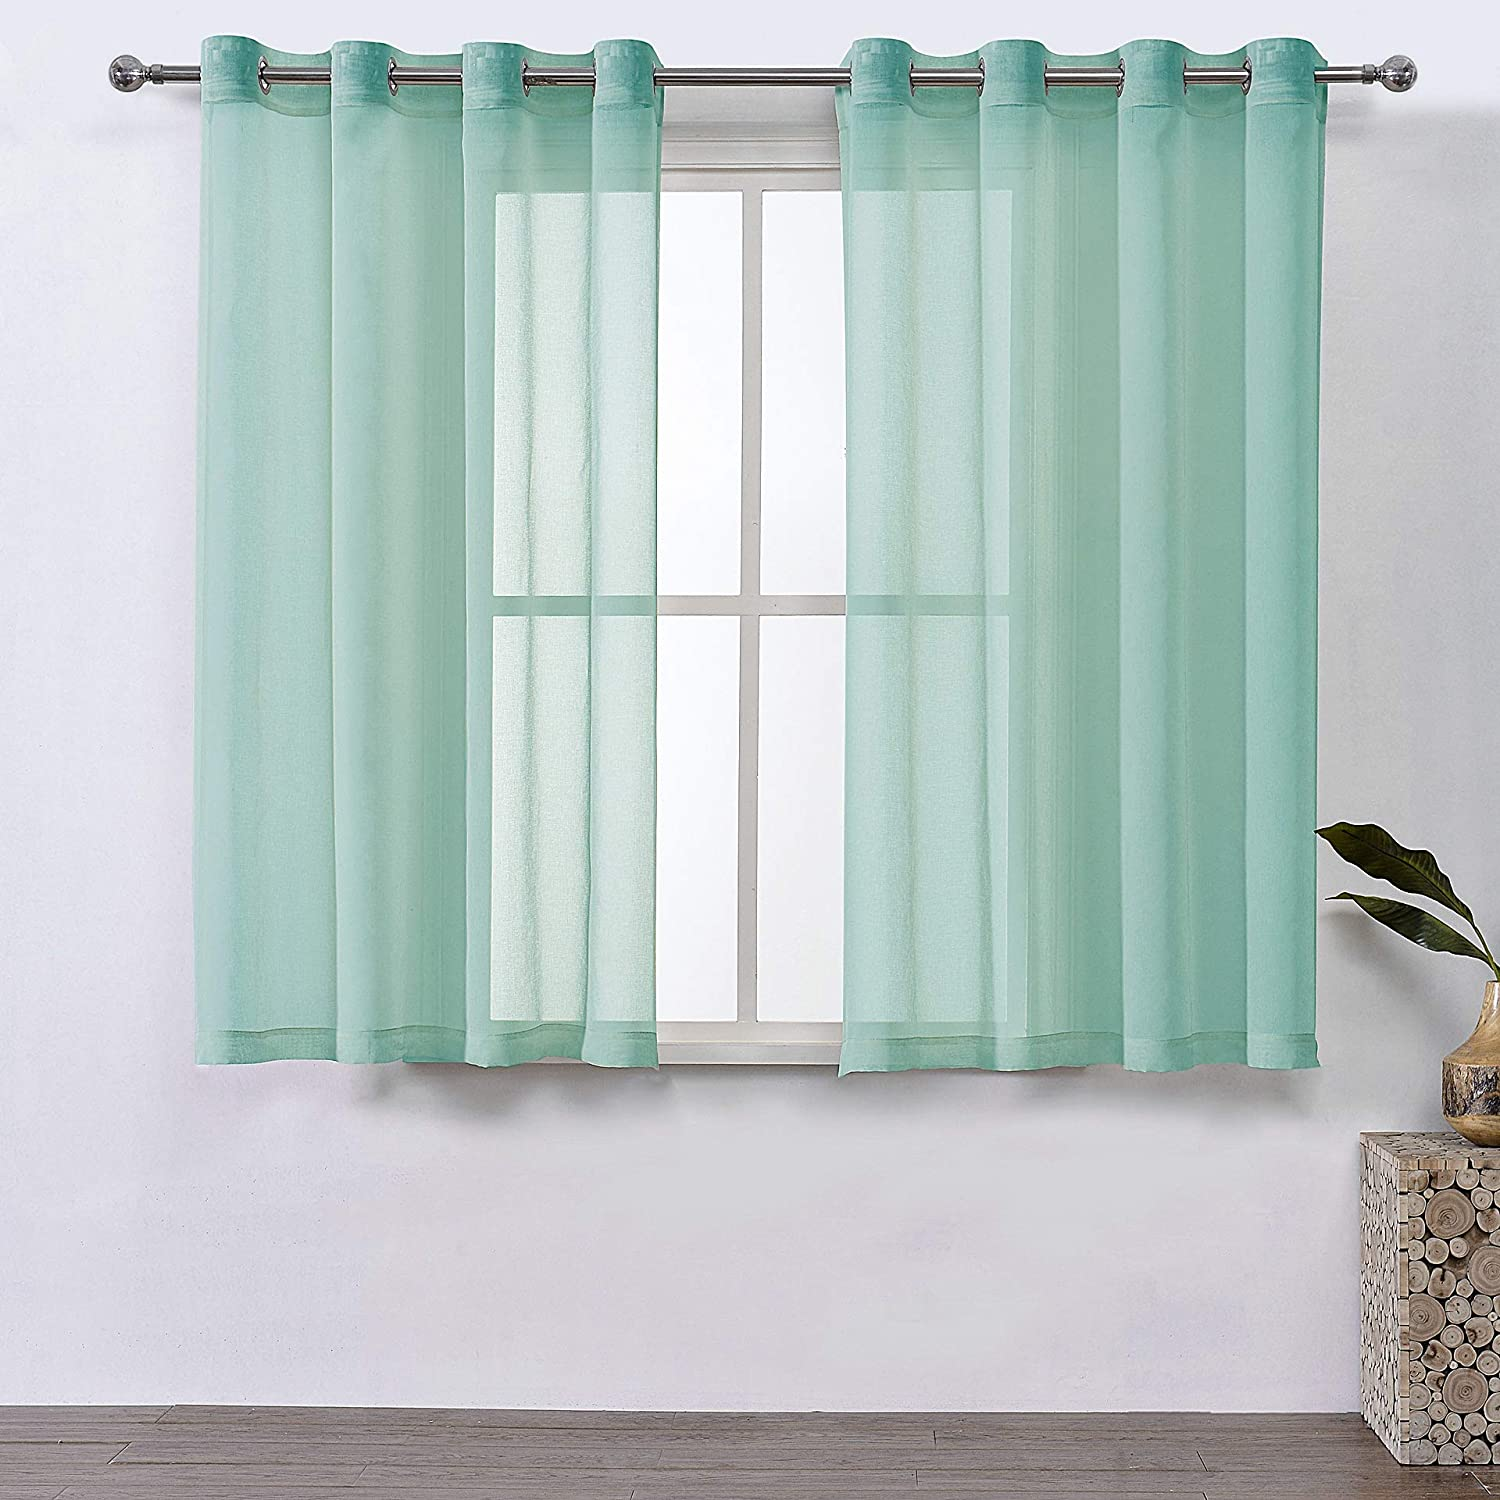 DWCN Sheer Curtains Faux Linen Sheer Voile Window Curtain for Living Room Grommet Mint Green Drapes 52 x 63 Inch Long, 1 Pair, Set of 2 Panels